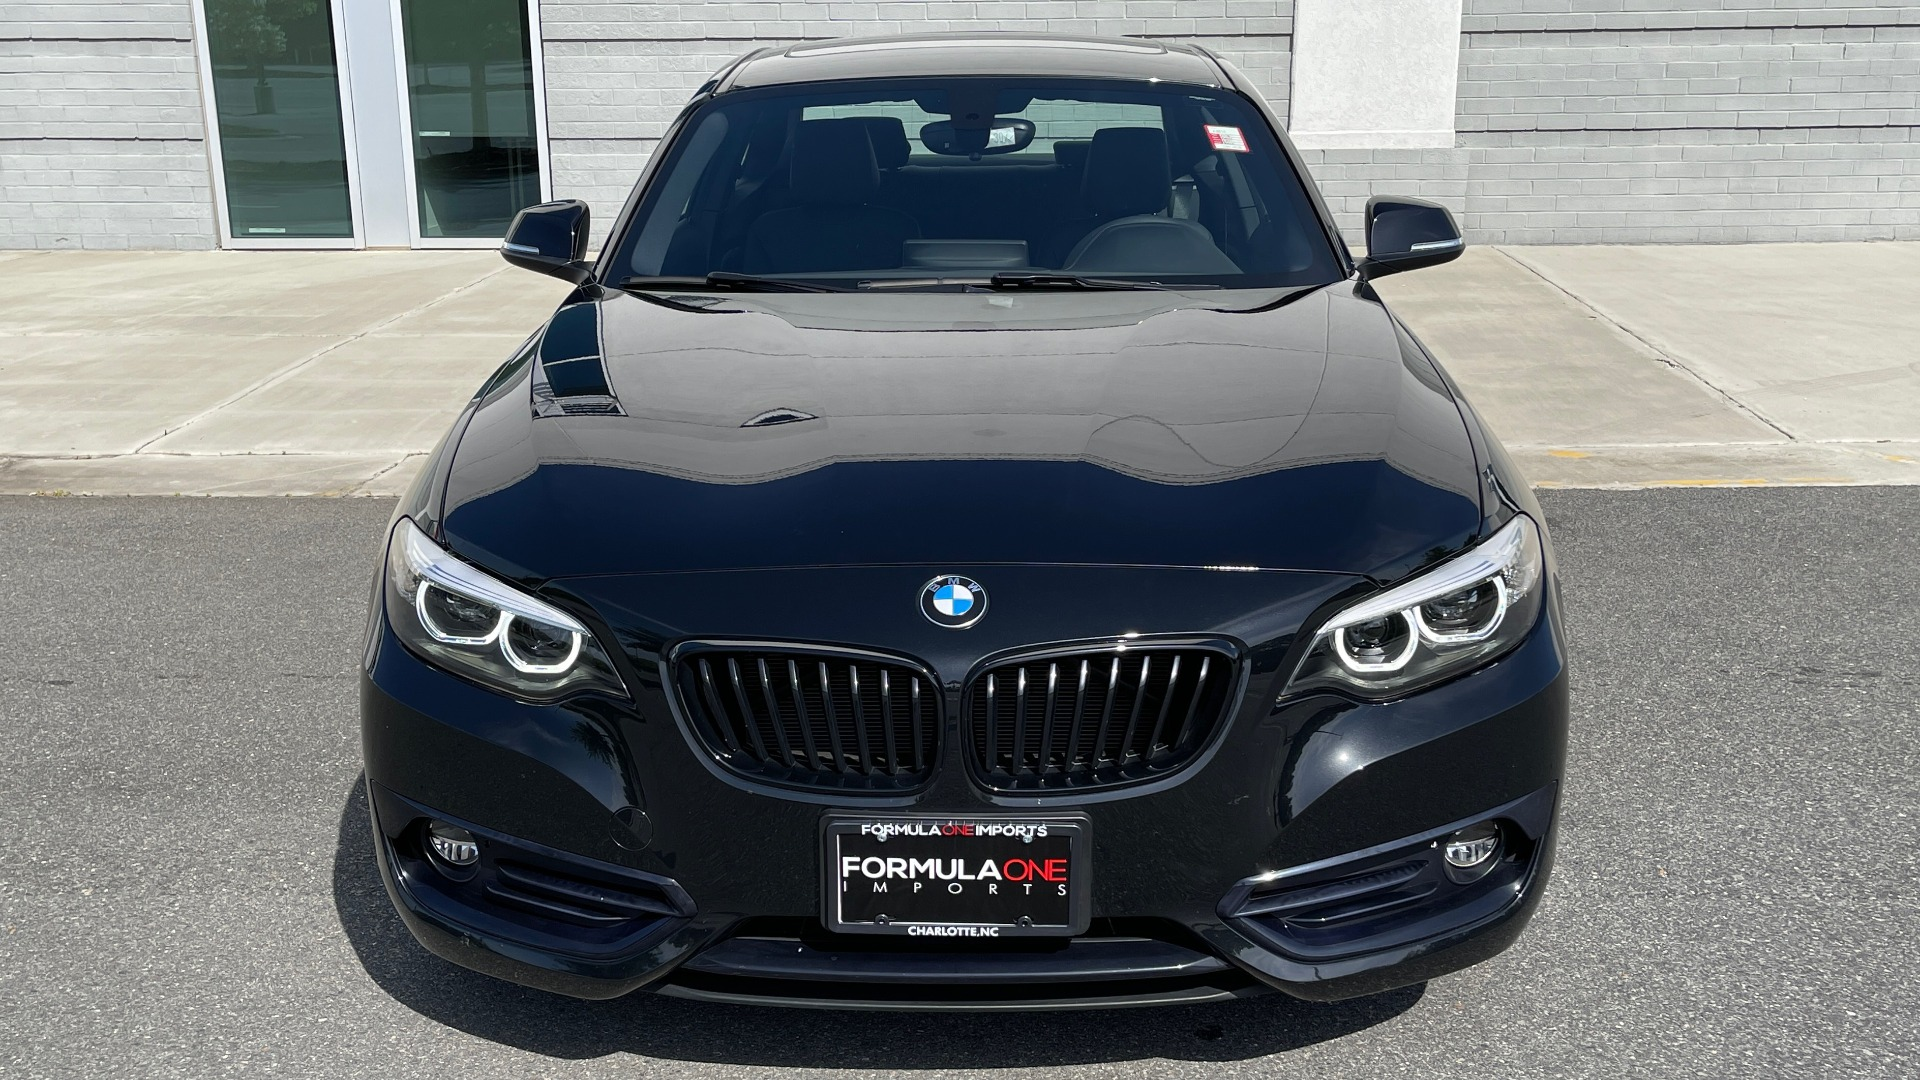 Used 2018 BMW 2 SERIES 230I XDRIVE PREMIUM / CONV PKG / NAV / SUNROOF / REARVIEW for sale $30,795 at Formula Imports in Charlotte NC 28227 11